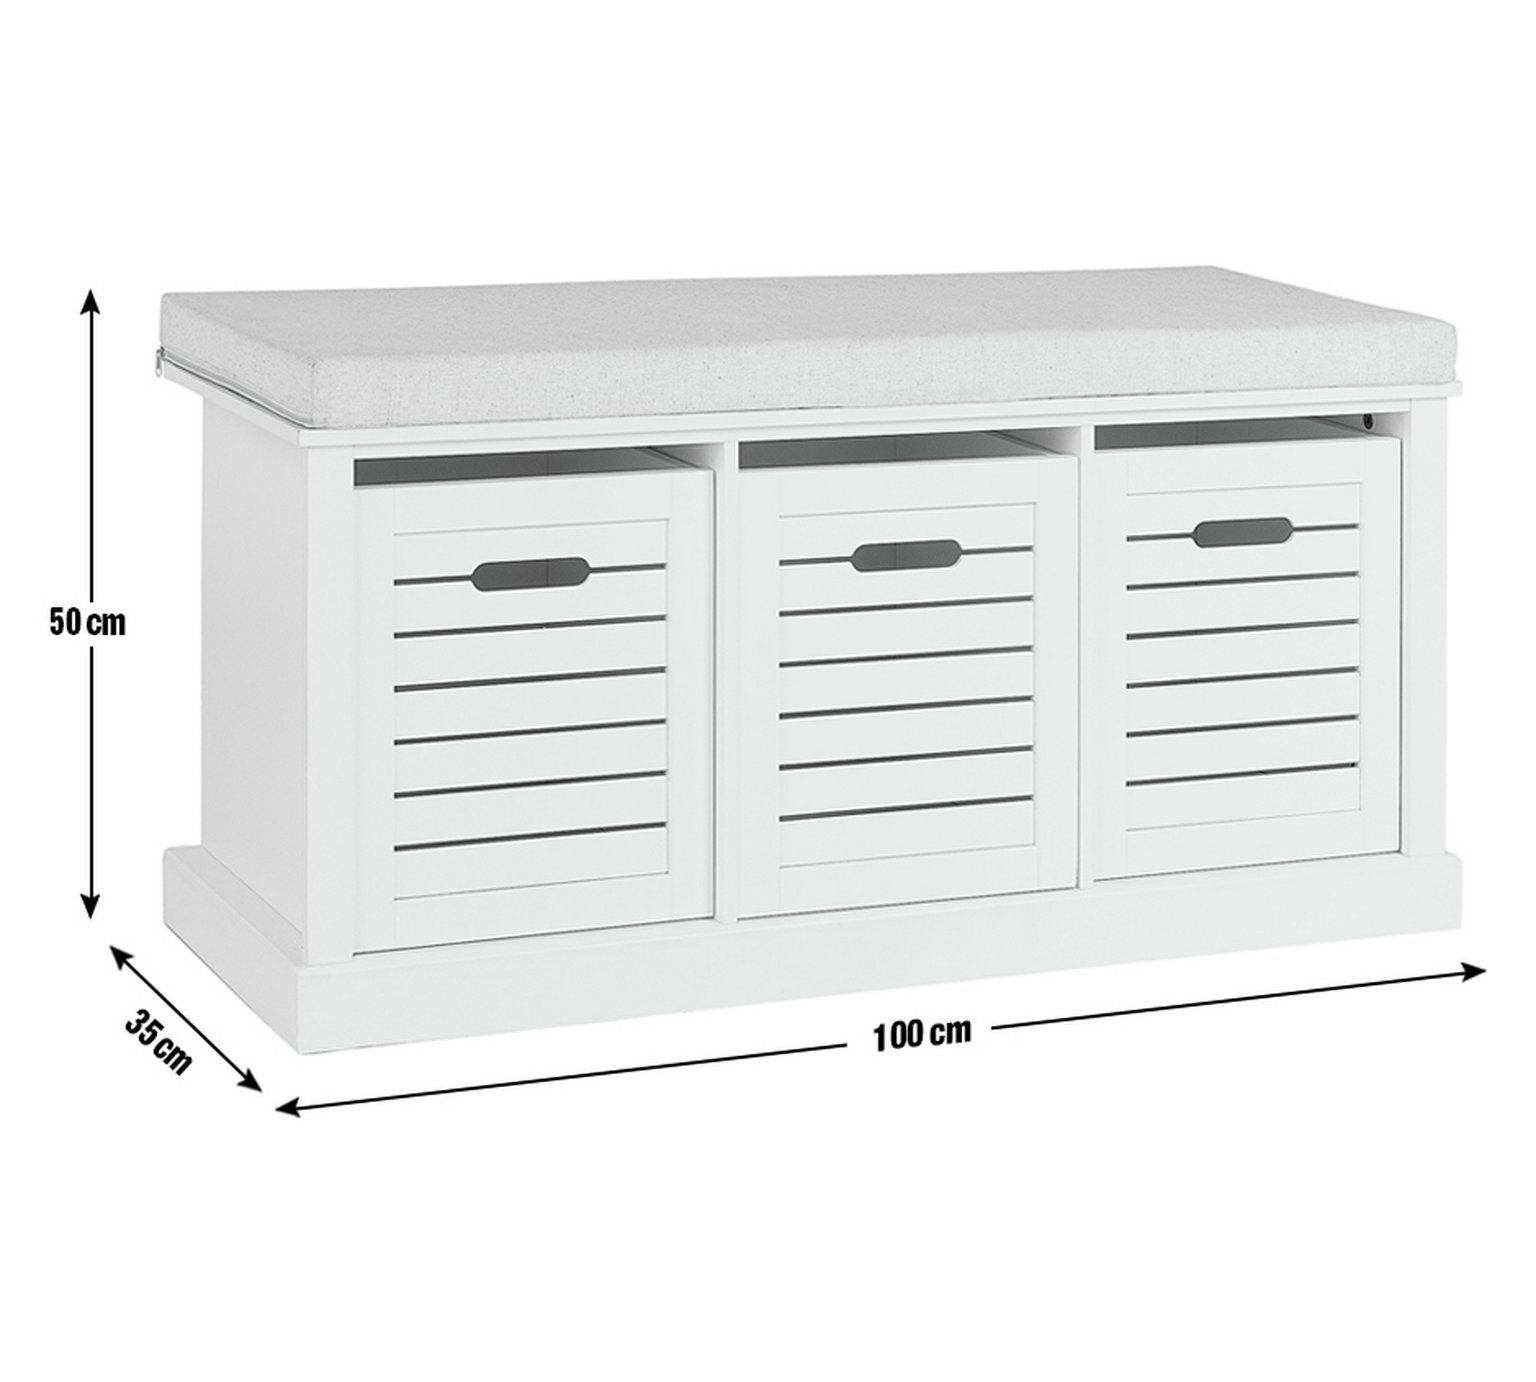 Fine Home Hereford Storage Bench White New House Shoe Pdpeps Interior Chair Design Pdpepsorg